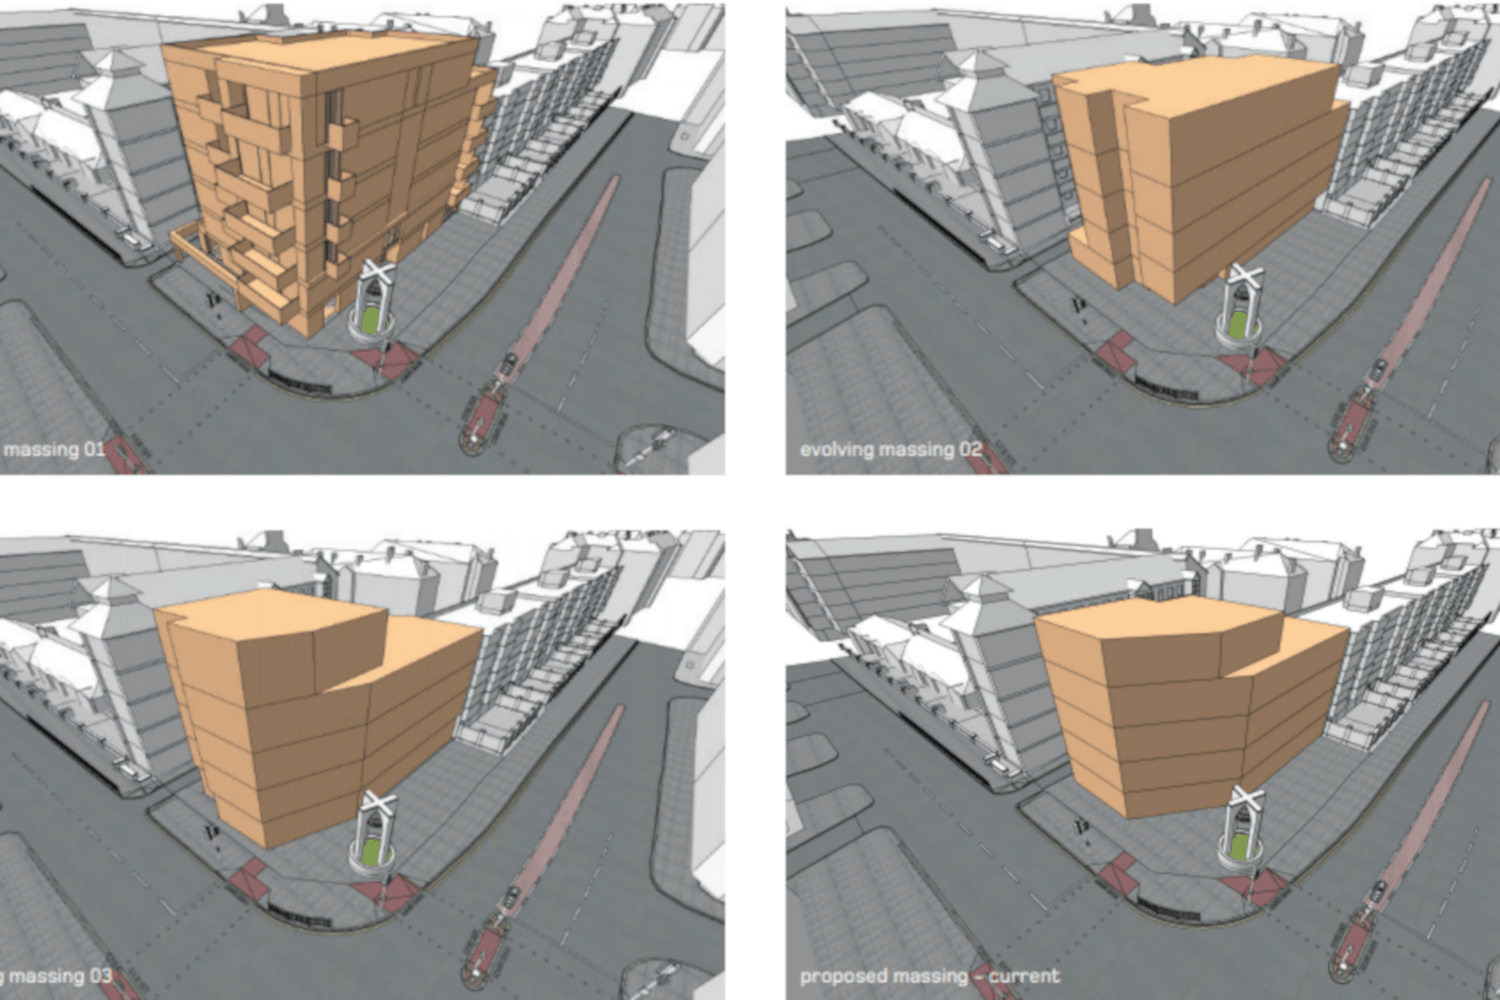 The changing Keats House car park re-development designs